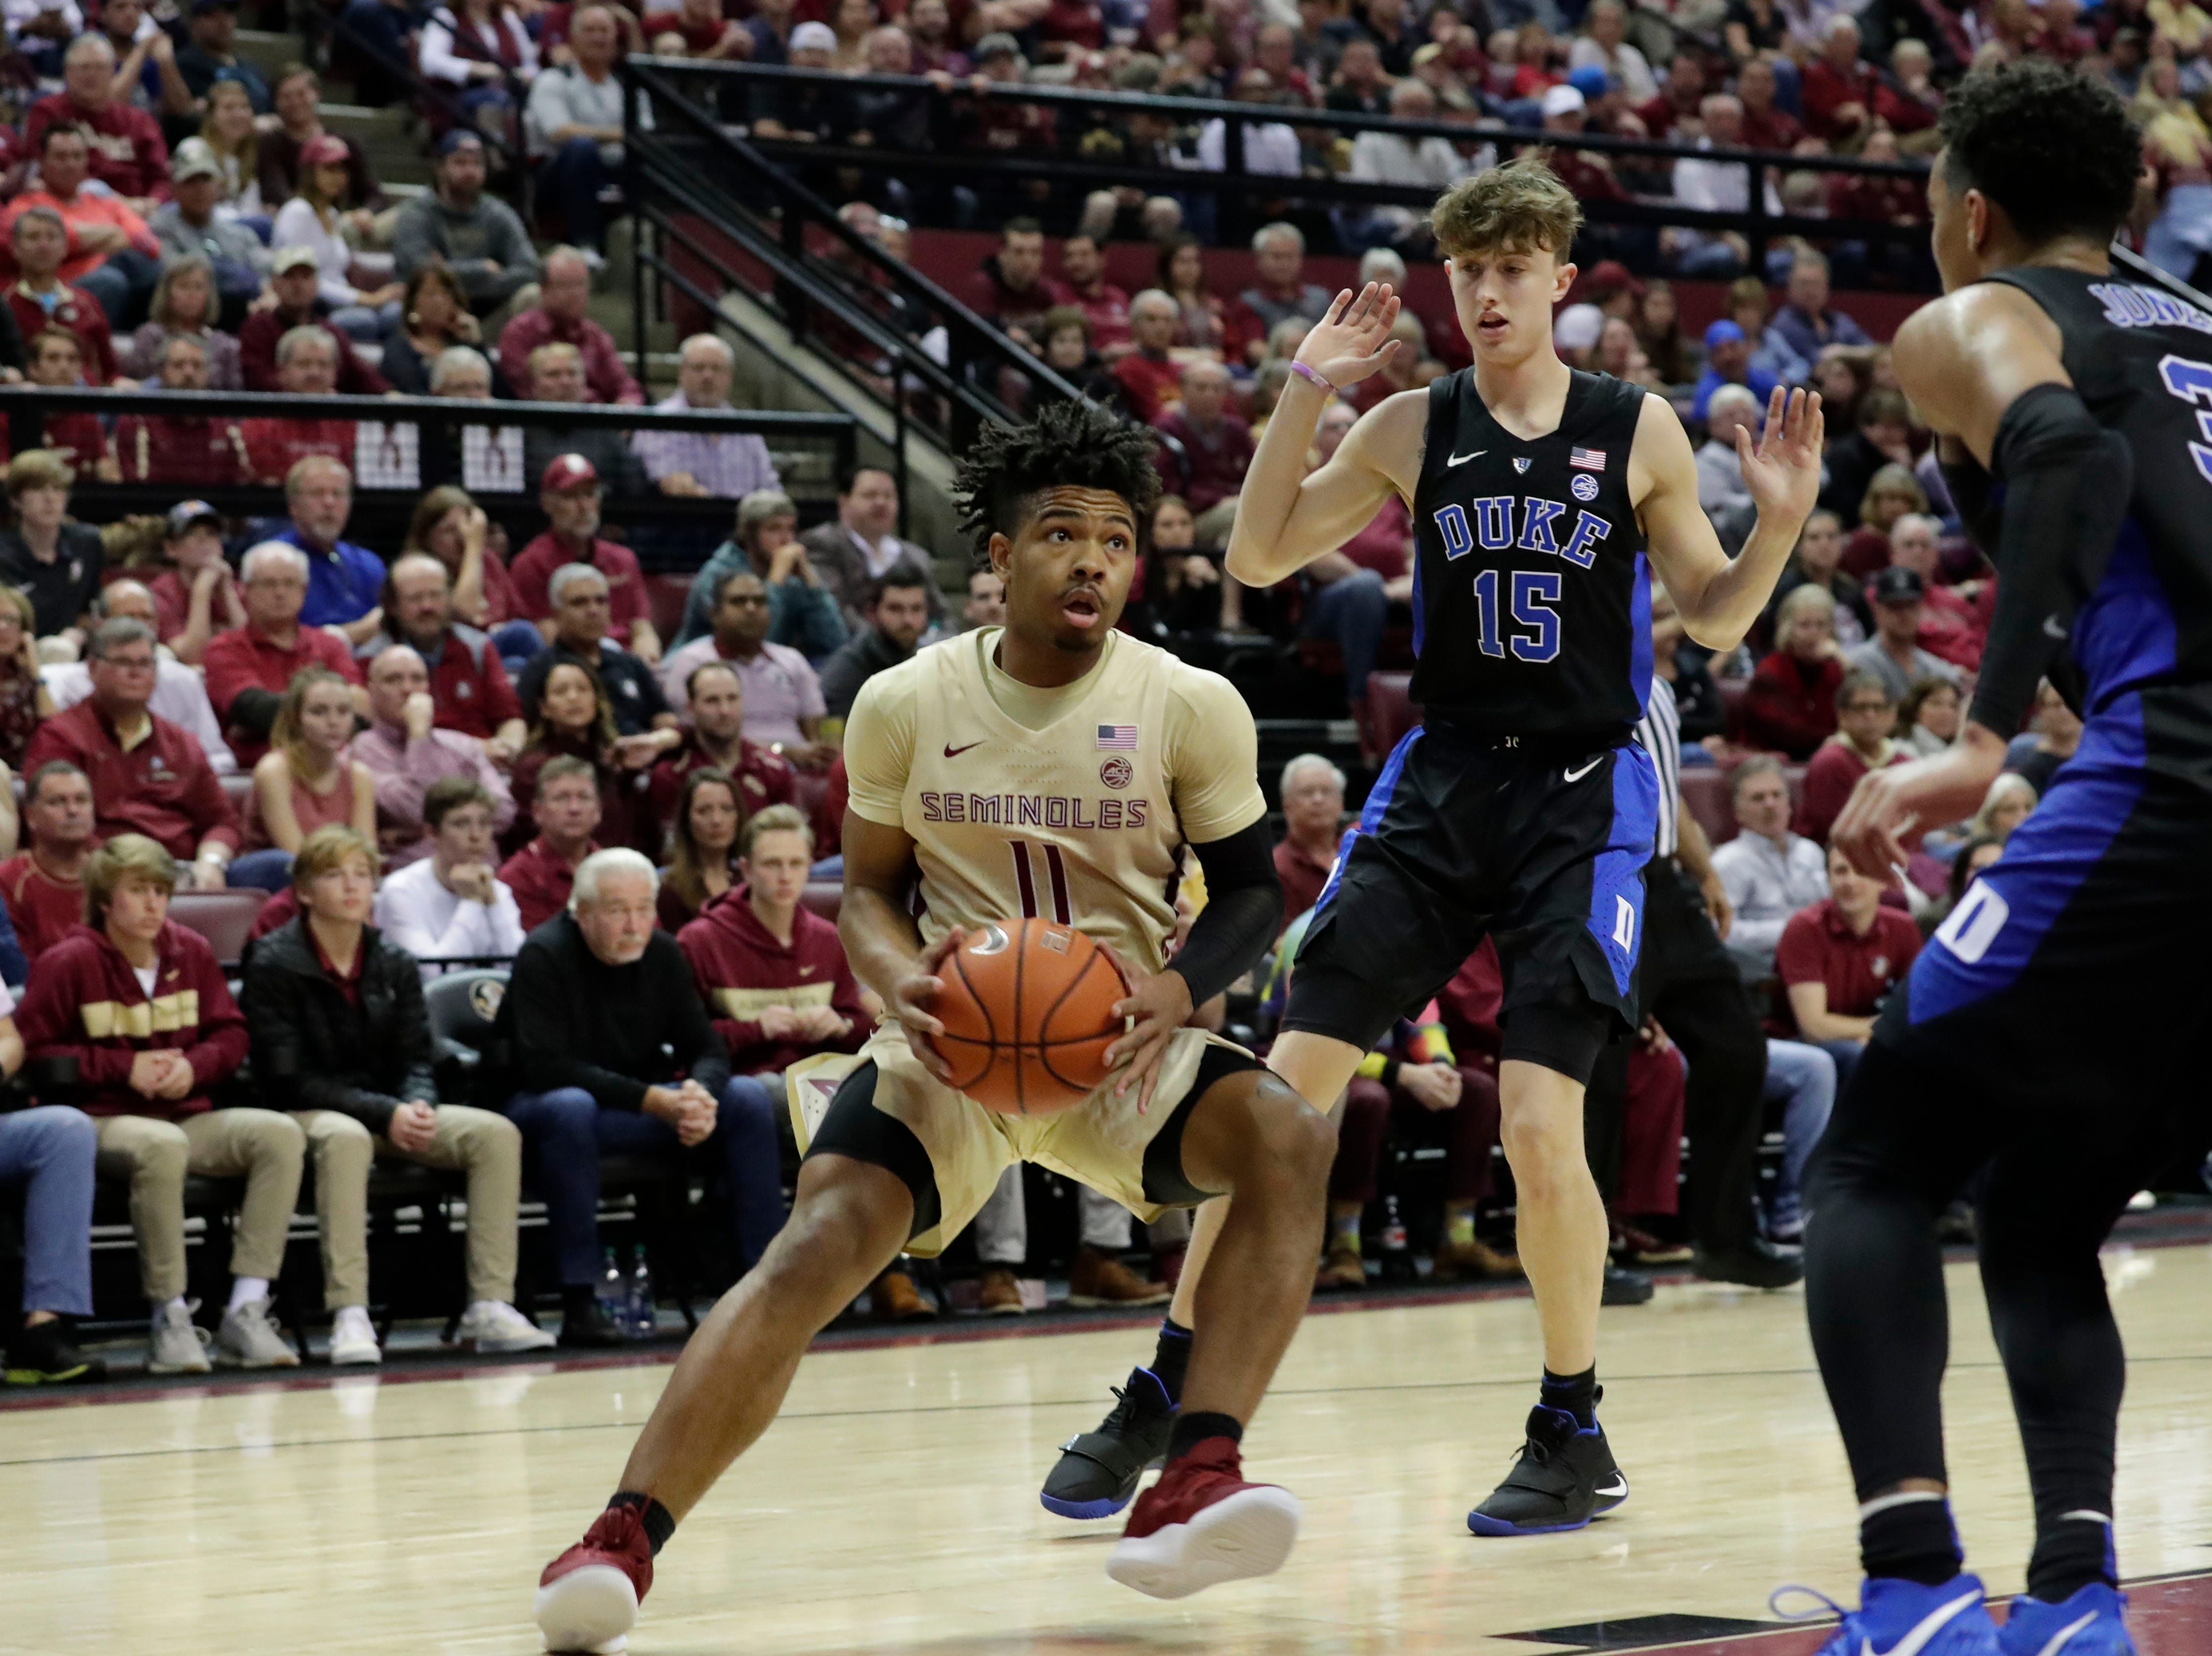 Florida State Seminoles guard David Nichols (11) looks towards the hoop for an opportunity to shoot. Ranked 13 in the ACC, the Florida State Seminoles host the number 1 team, the Duke Blue Devils, at the Tucker Civic Center, Saturday, Jan. 12, 2019.